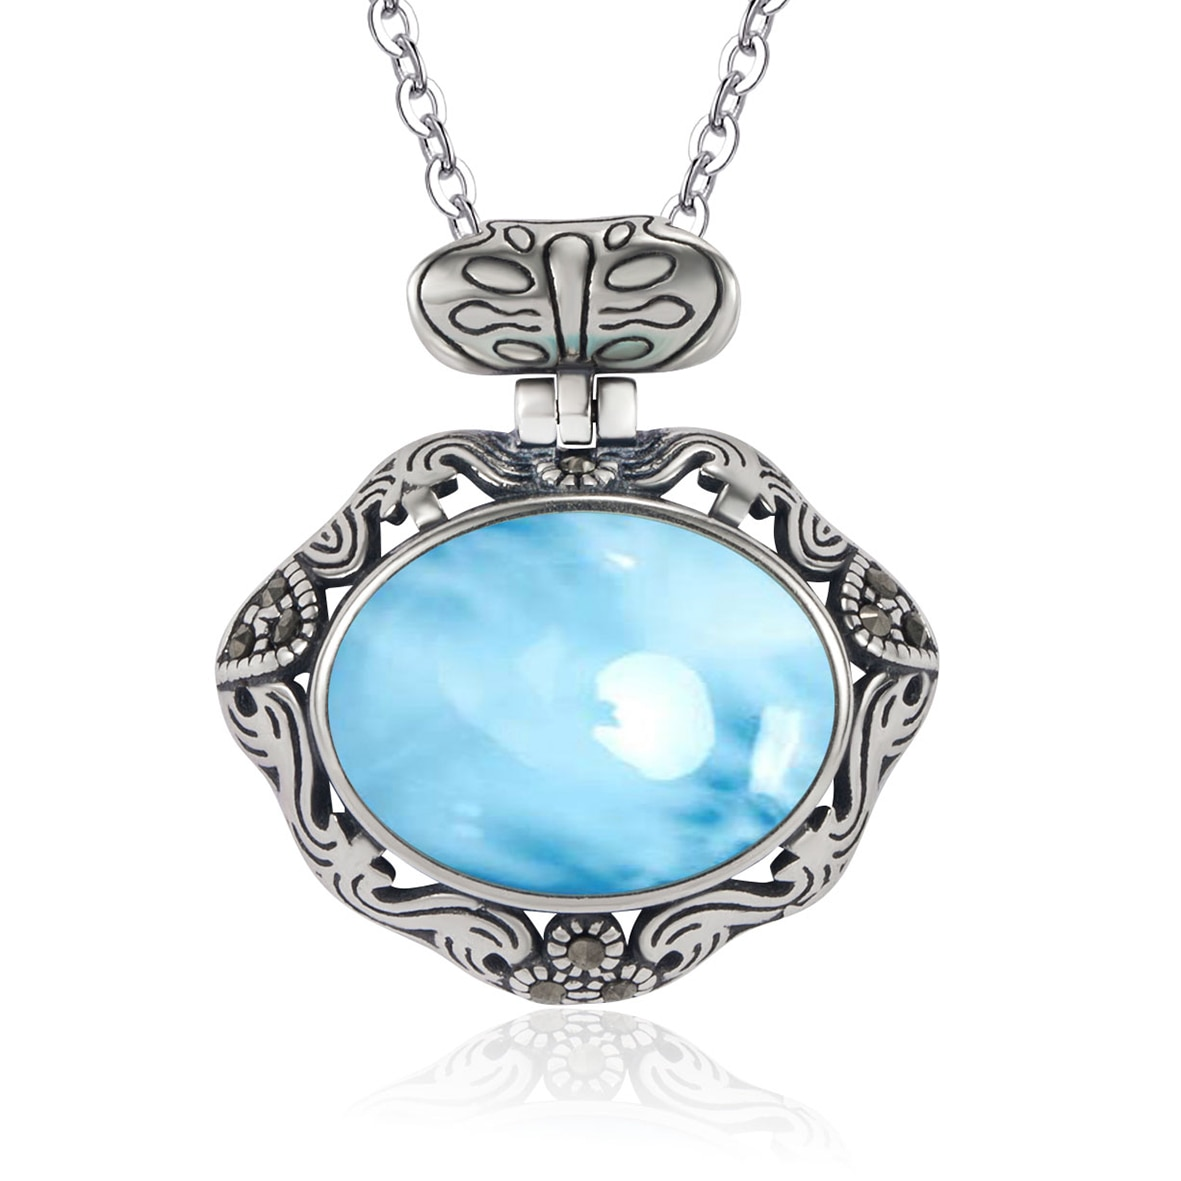 Silver Larimar Jewelry High Quality Oval Cut 12x16mm Natural Larimar Pendant Necklace